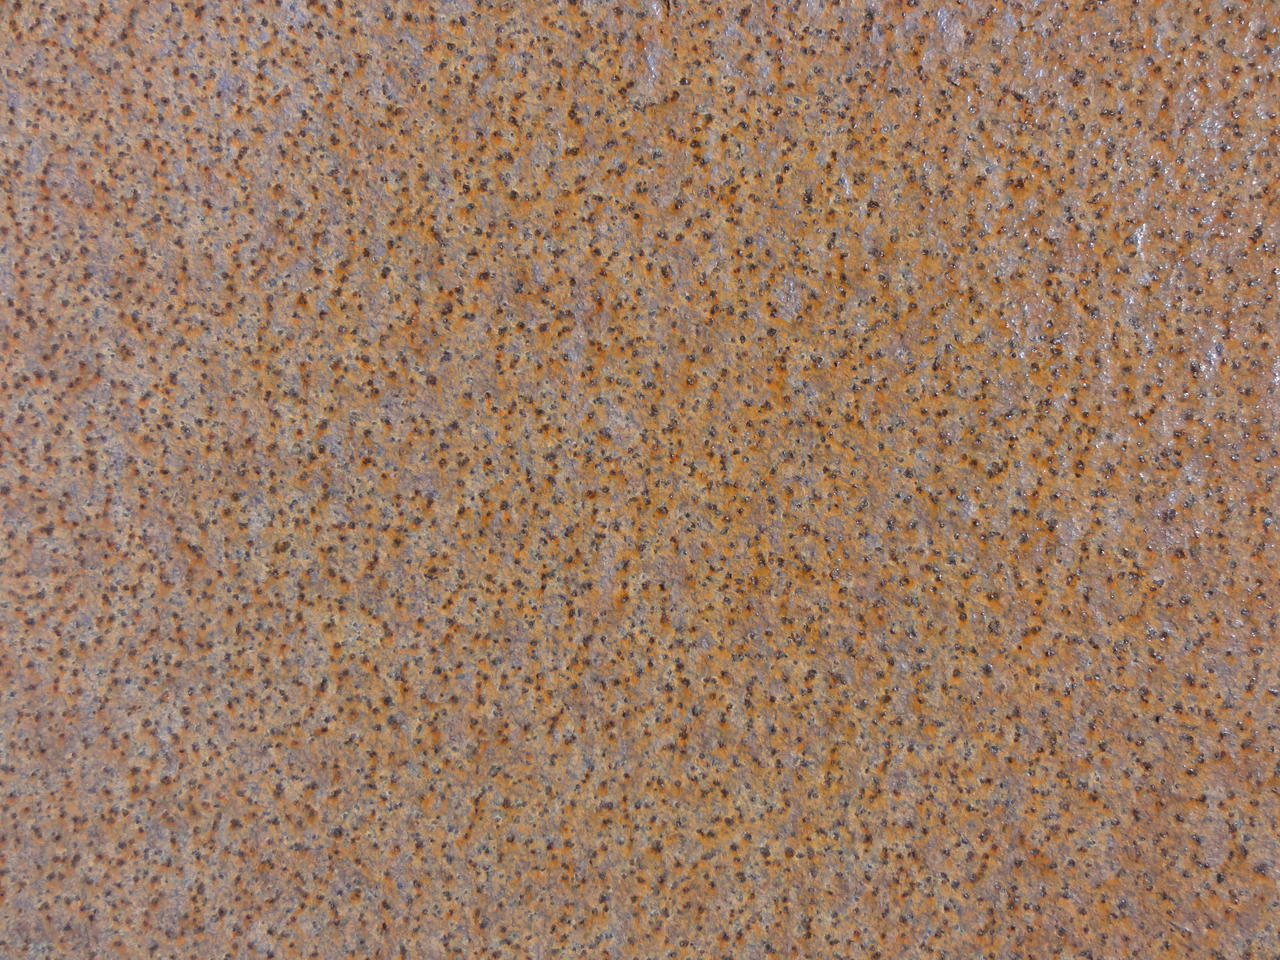 Rusted Metal Plates Texture Texture - Rusty Metal ...